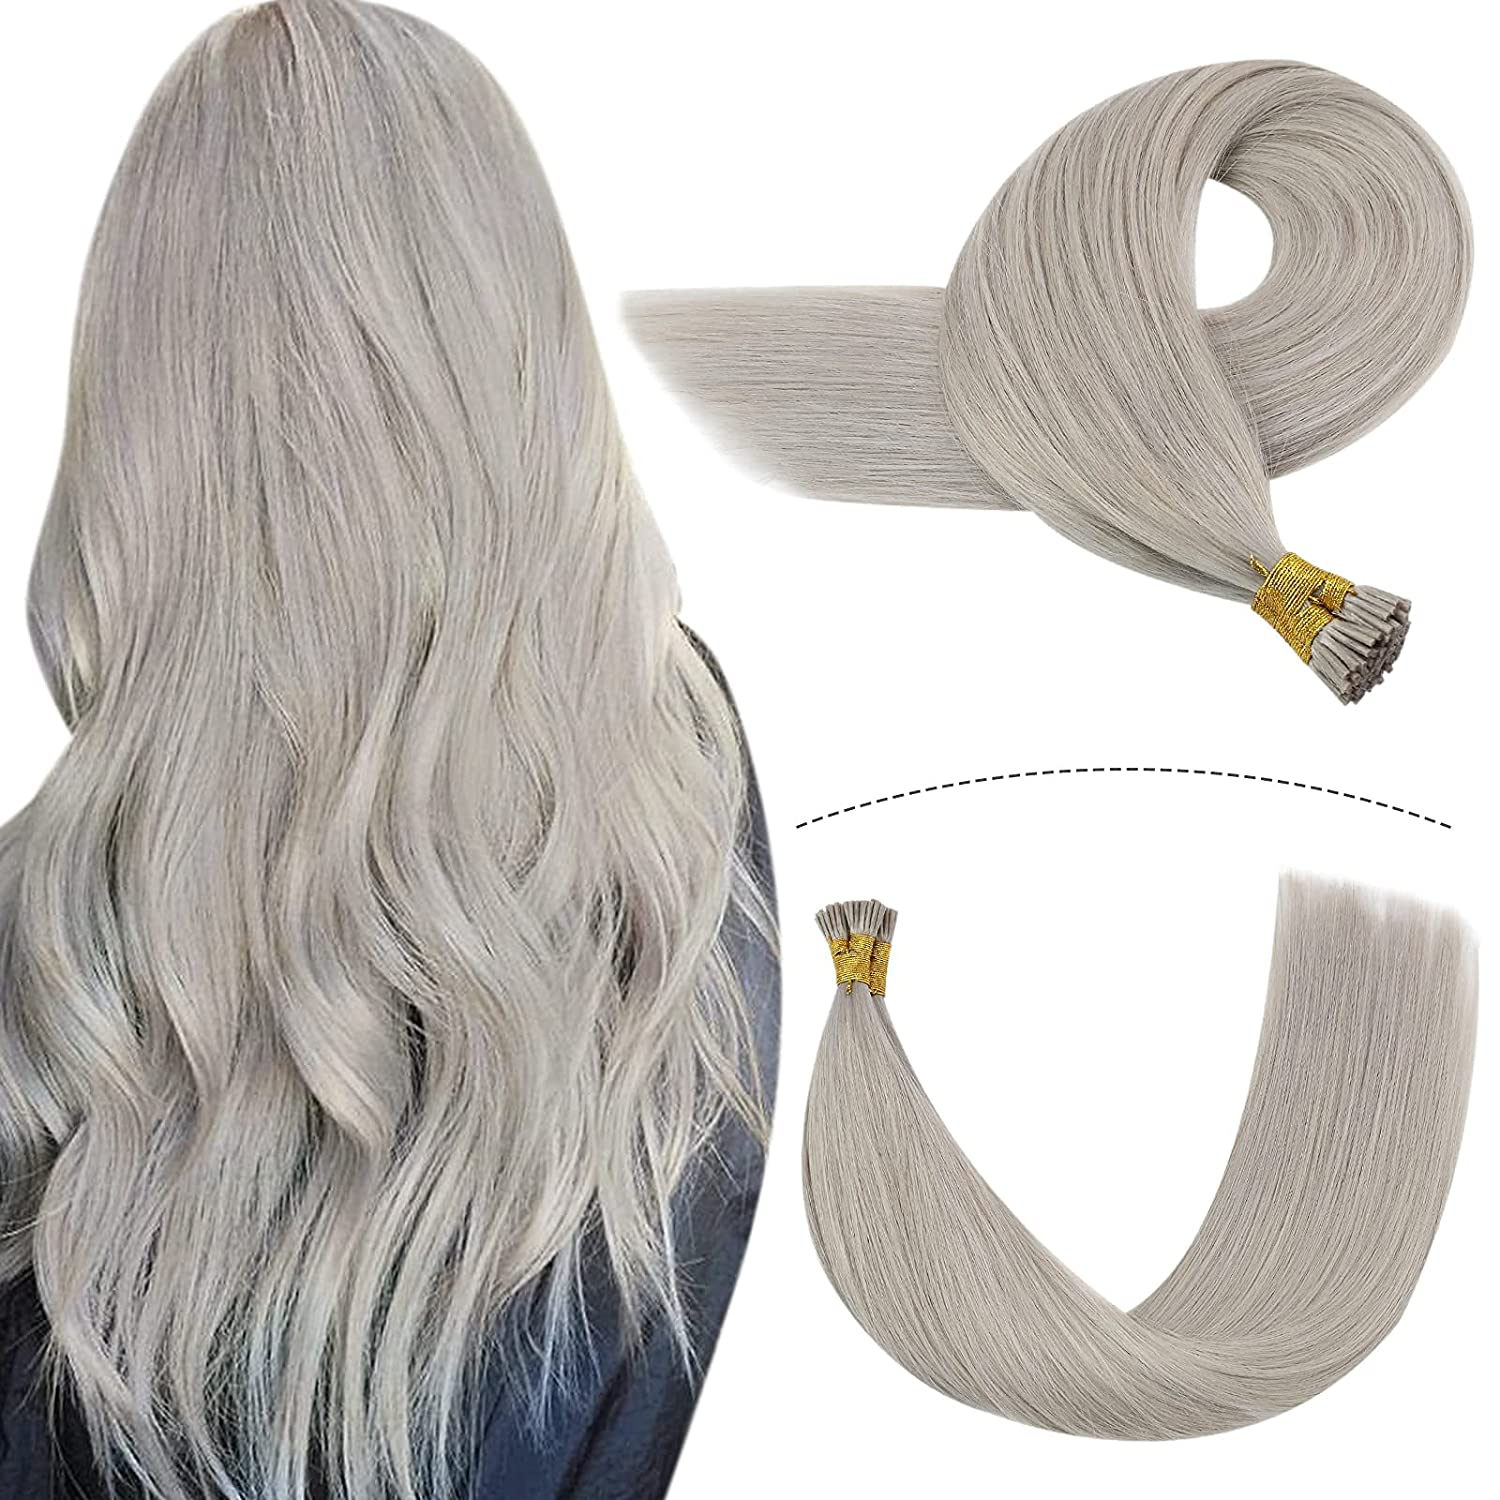 YoungSee Itip Human Extensions Silver Hair Manufacturer direct delivery At the price of surprise